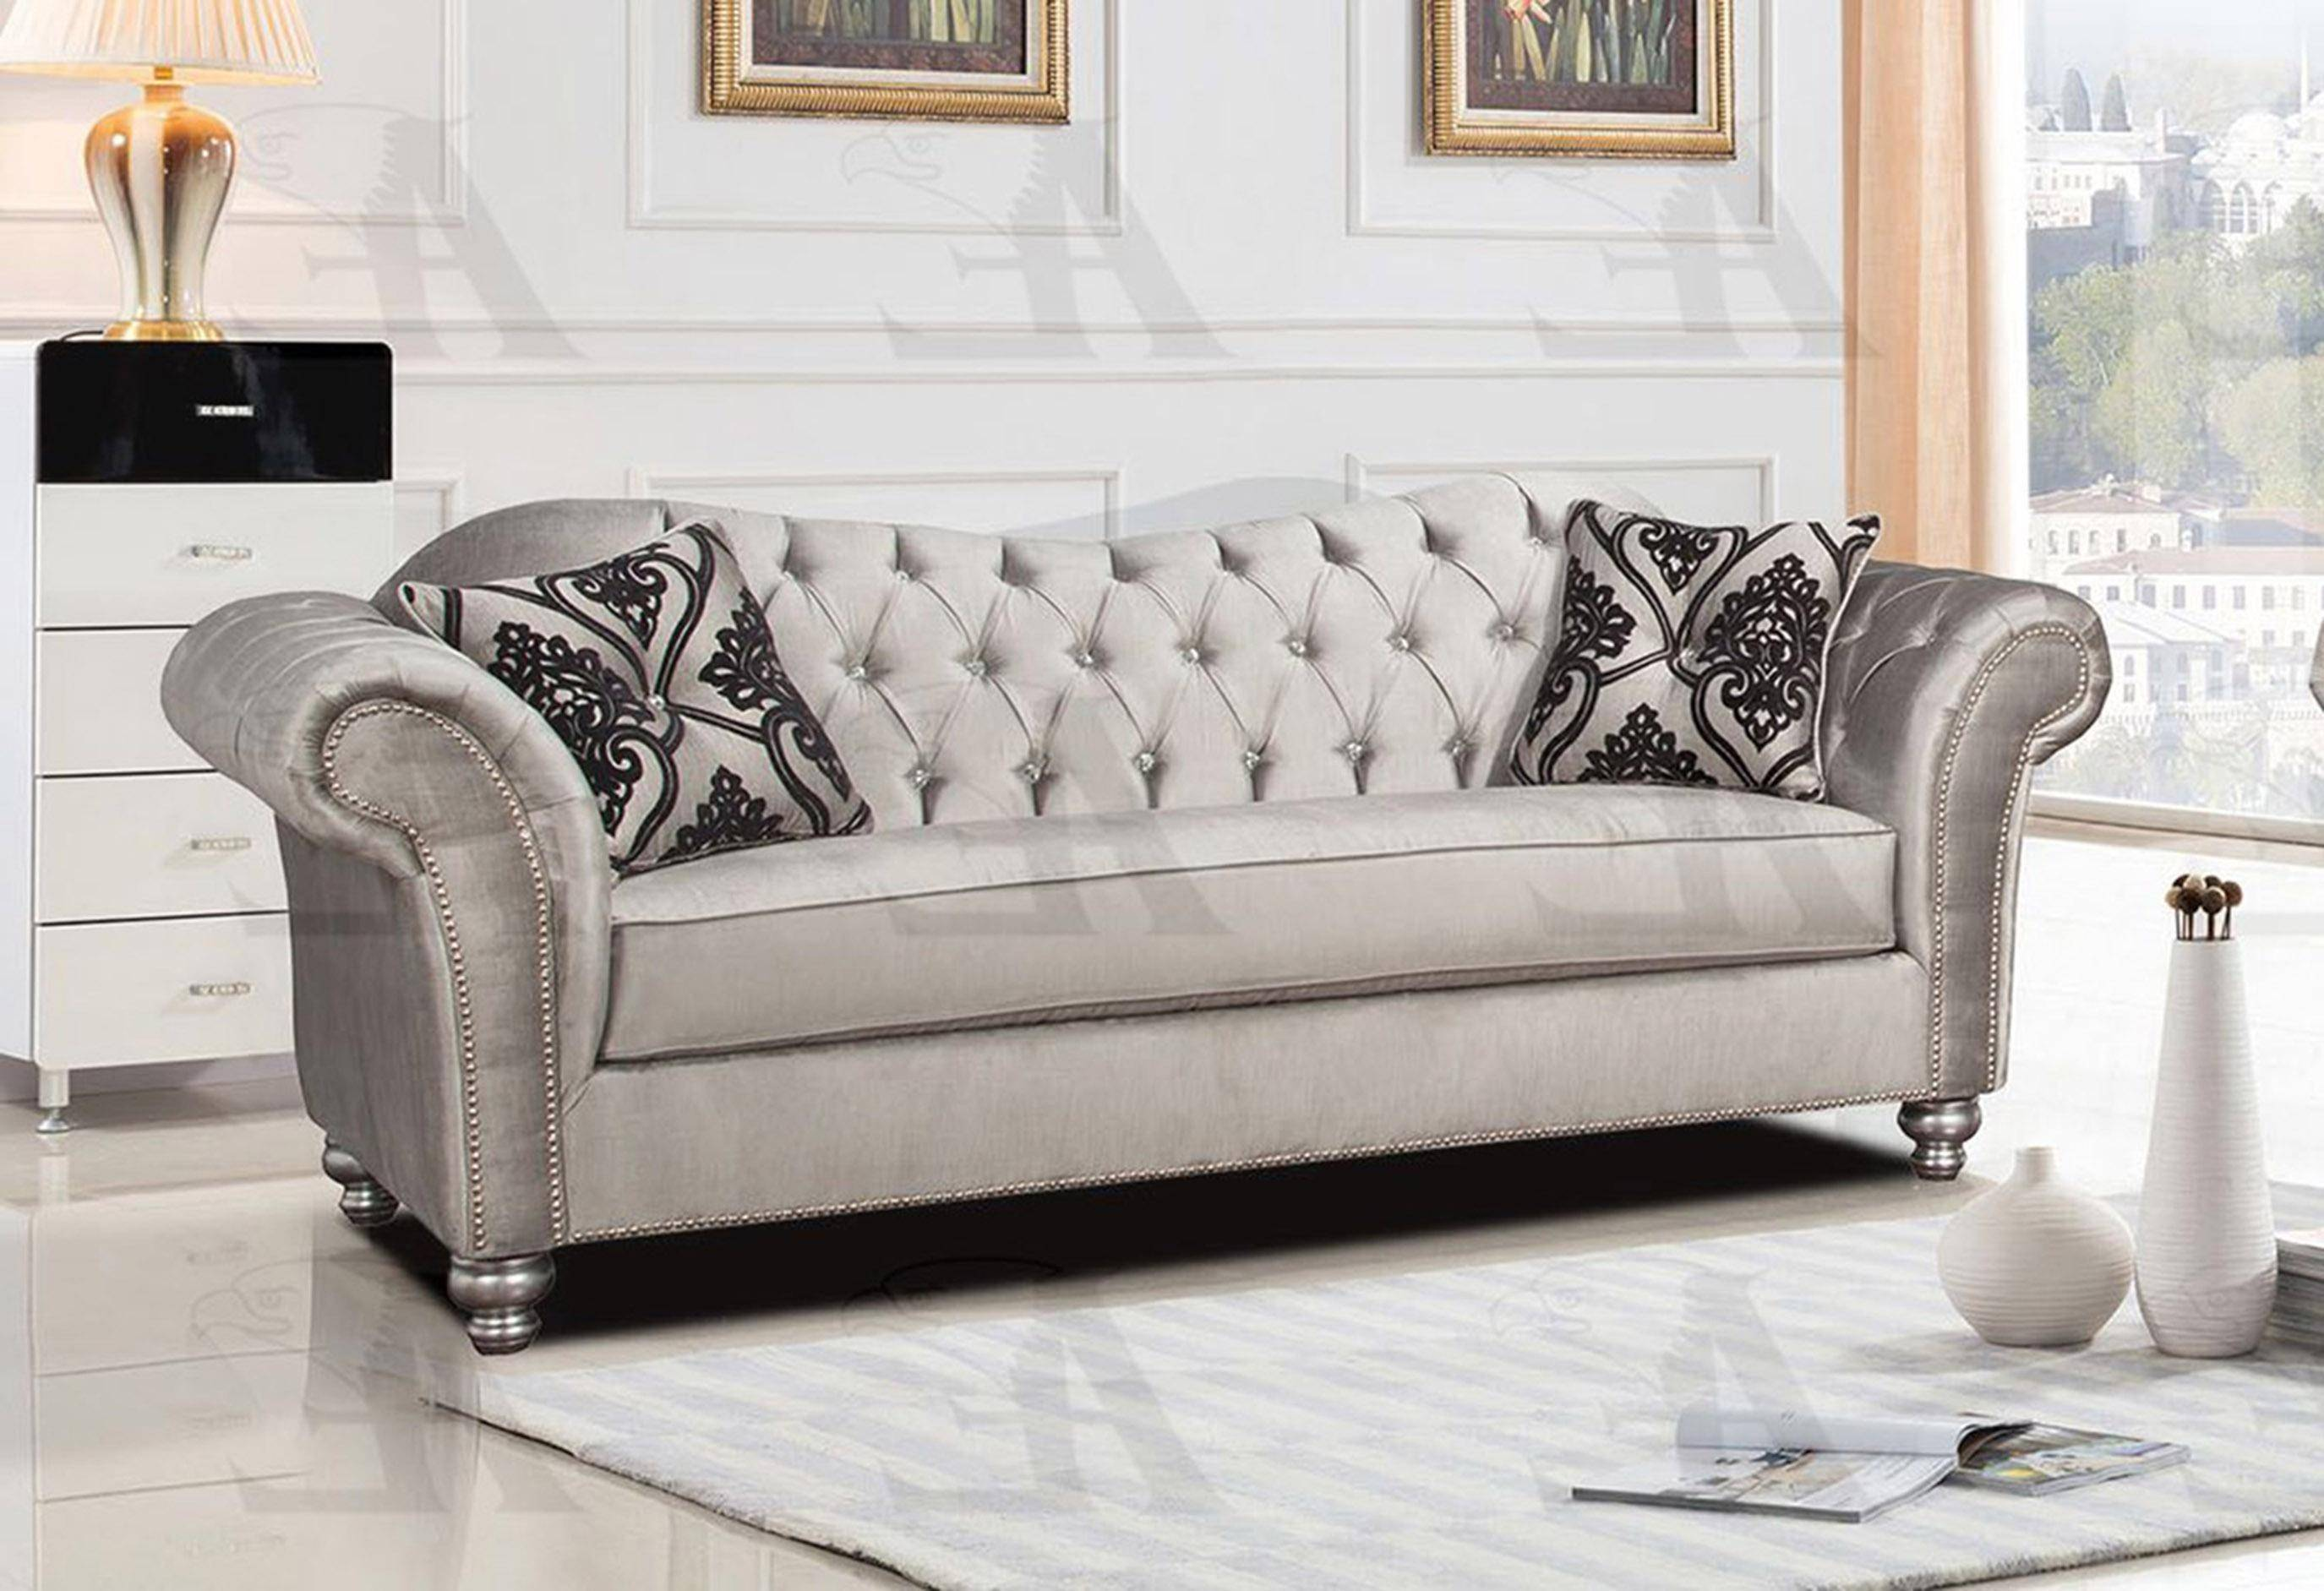 American Eagle Furniture Ae2600 S Silver Tufted Sofa Fabric